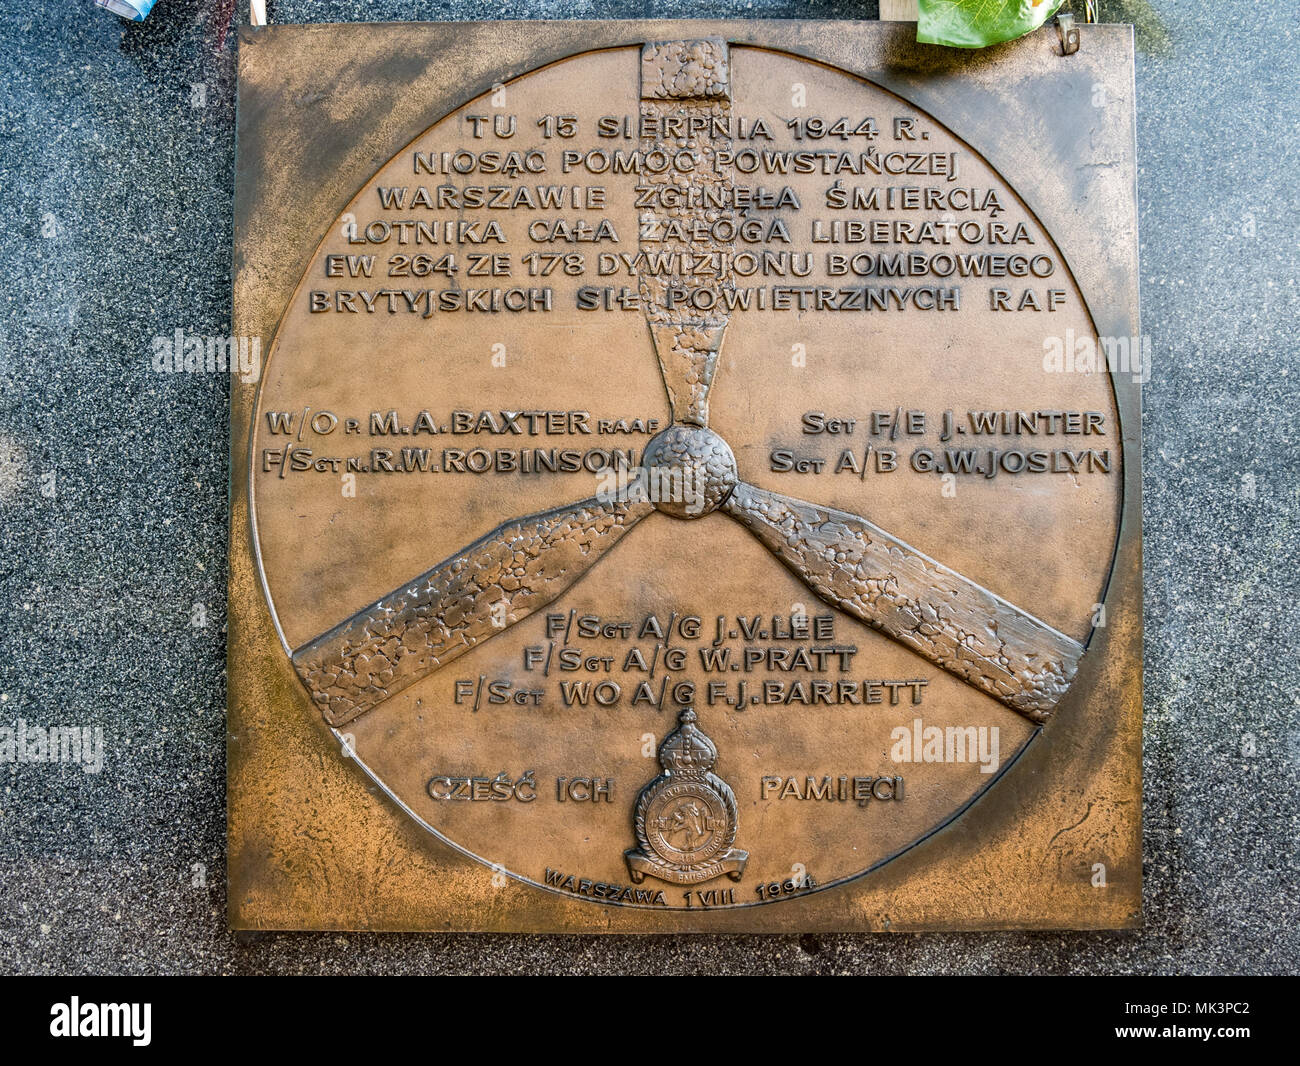 Memorial stone commemorating victims of Liberator crash during WW2, Warsaw, Poland - Stock Image